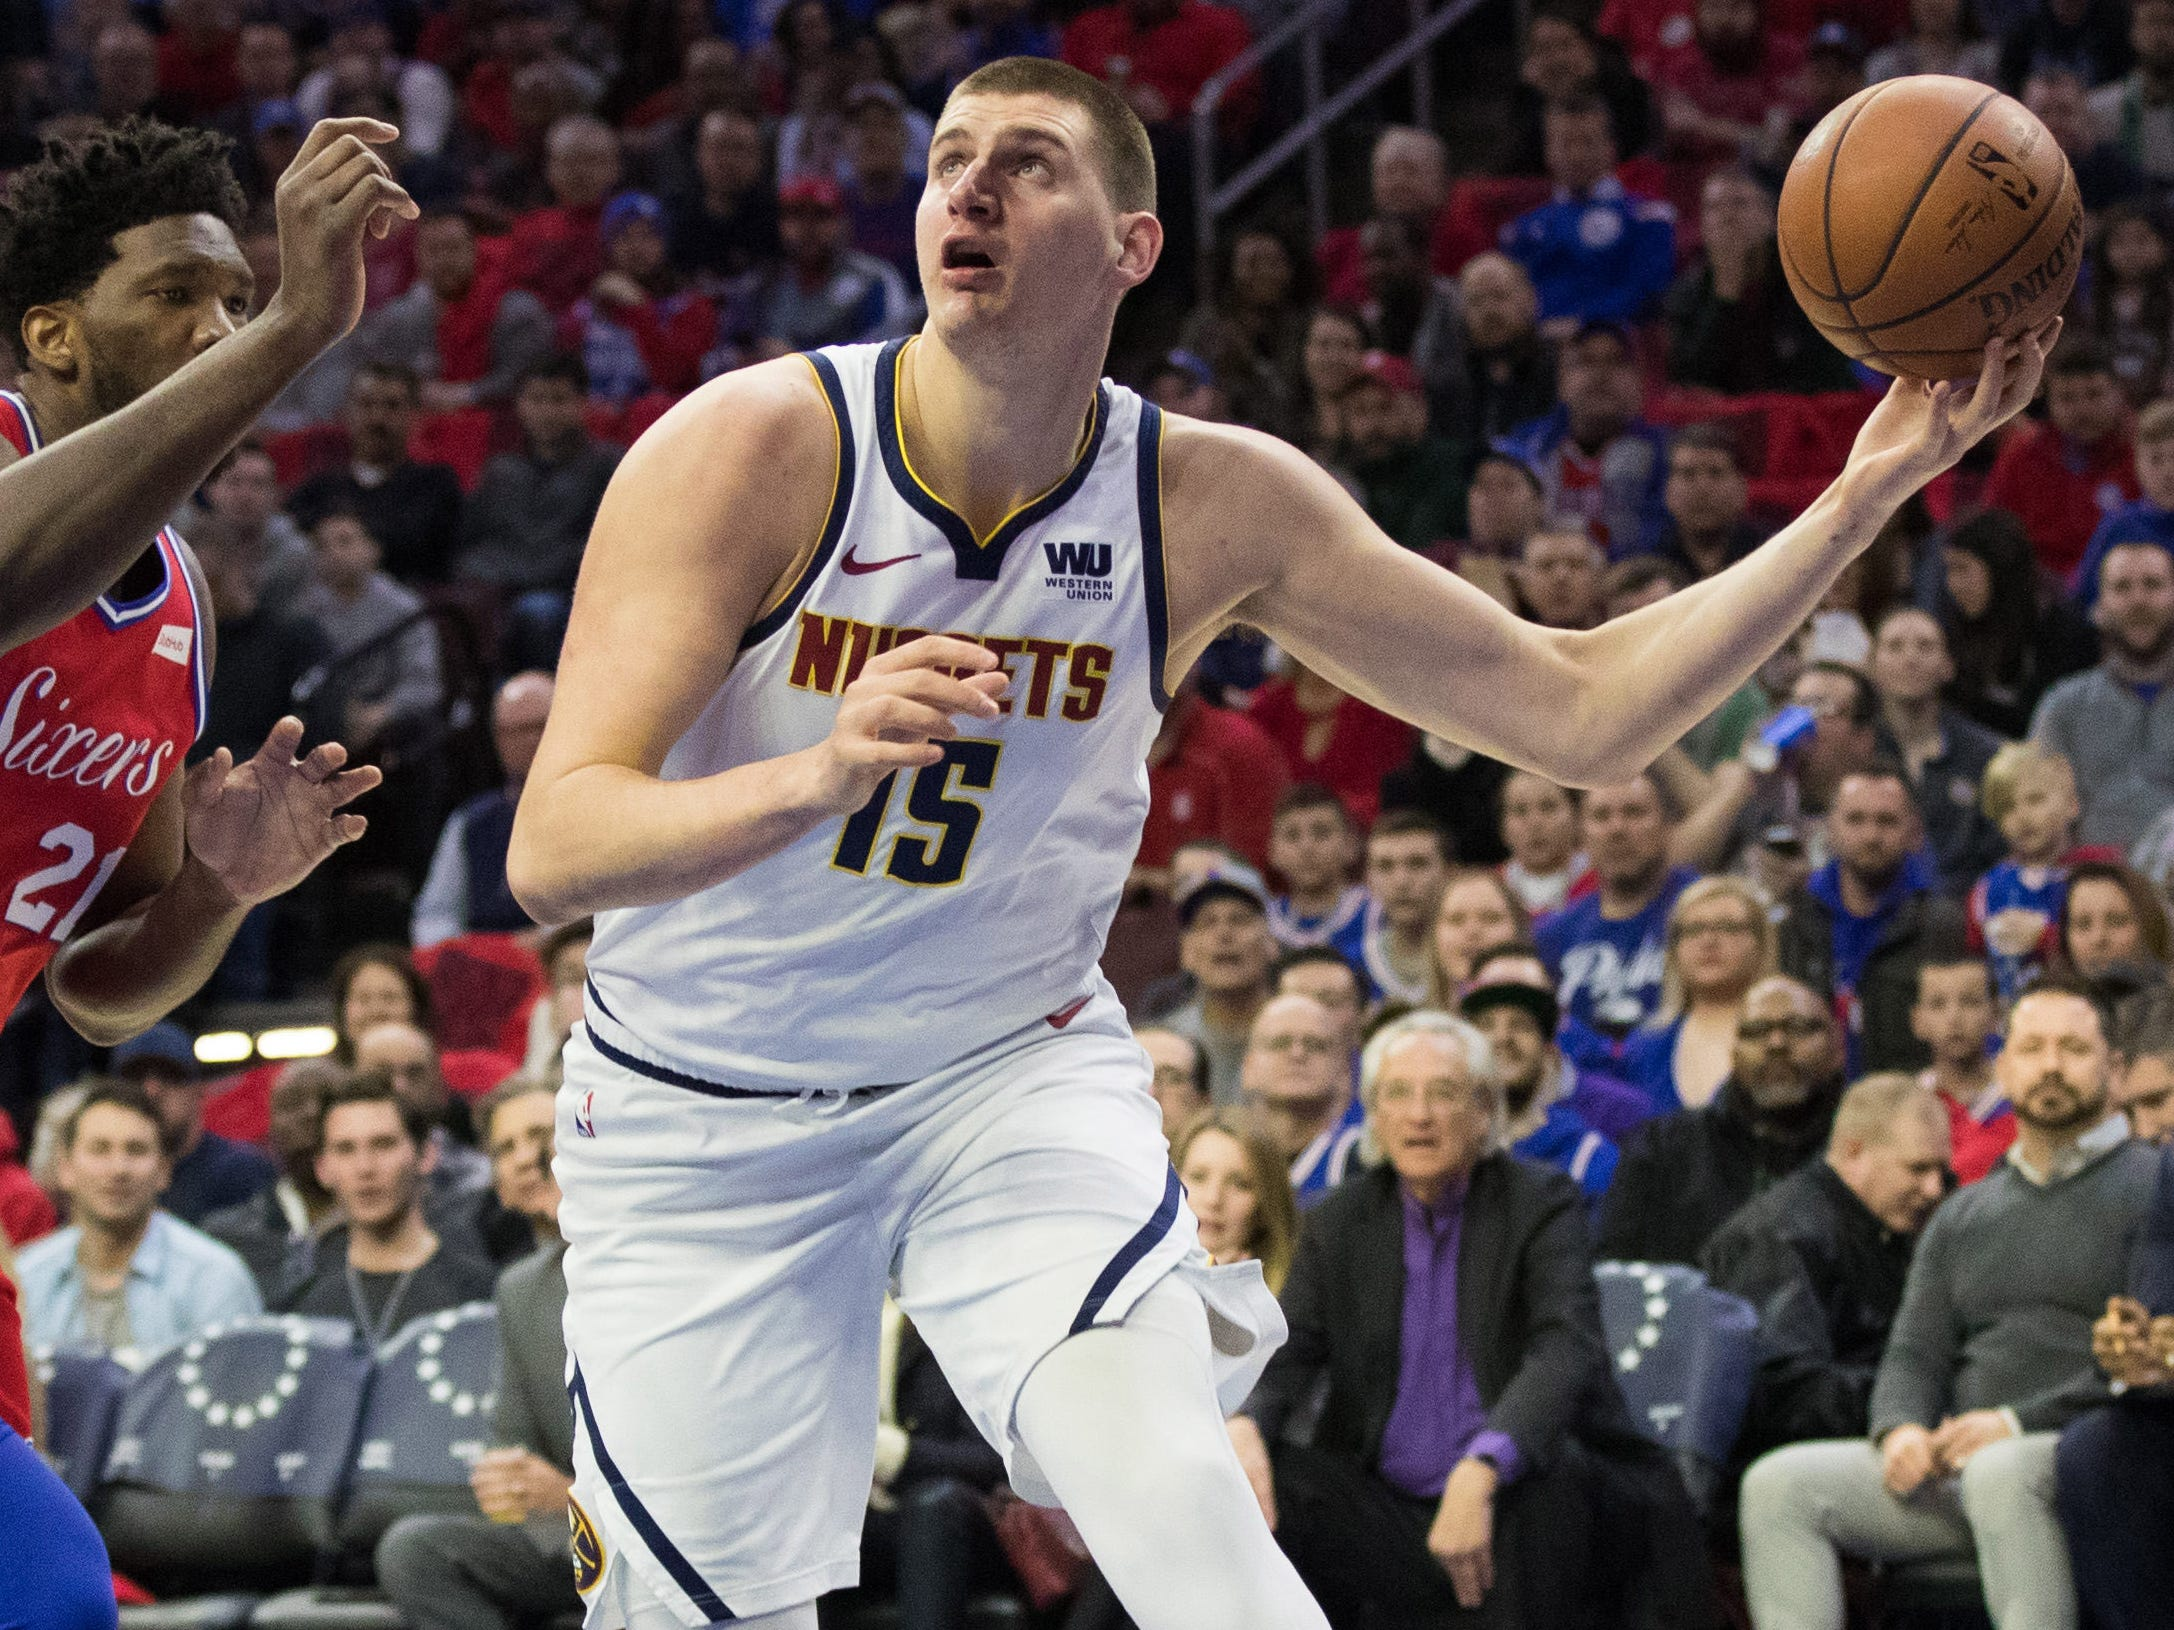 78. Nikola Jokic, Nuggets(Feb. 8): 27 points, 10 rebounds, 10 assists in 117-110 loss to 76ers (11th of season).